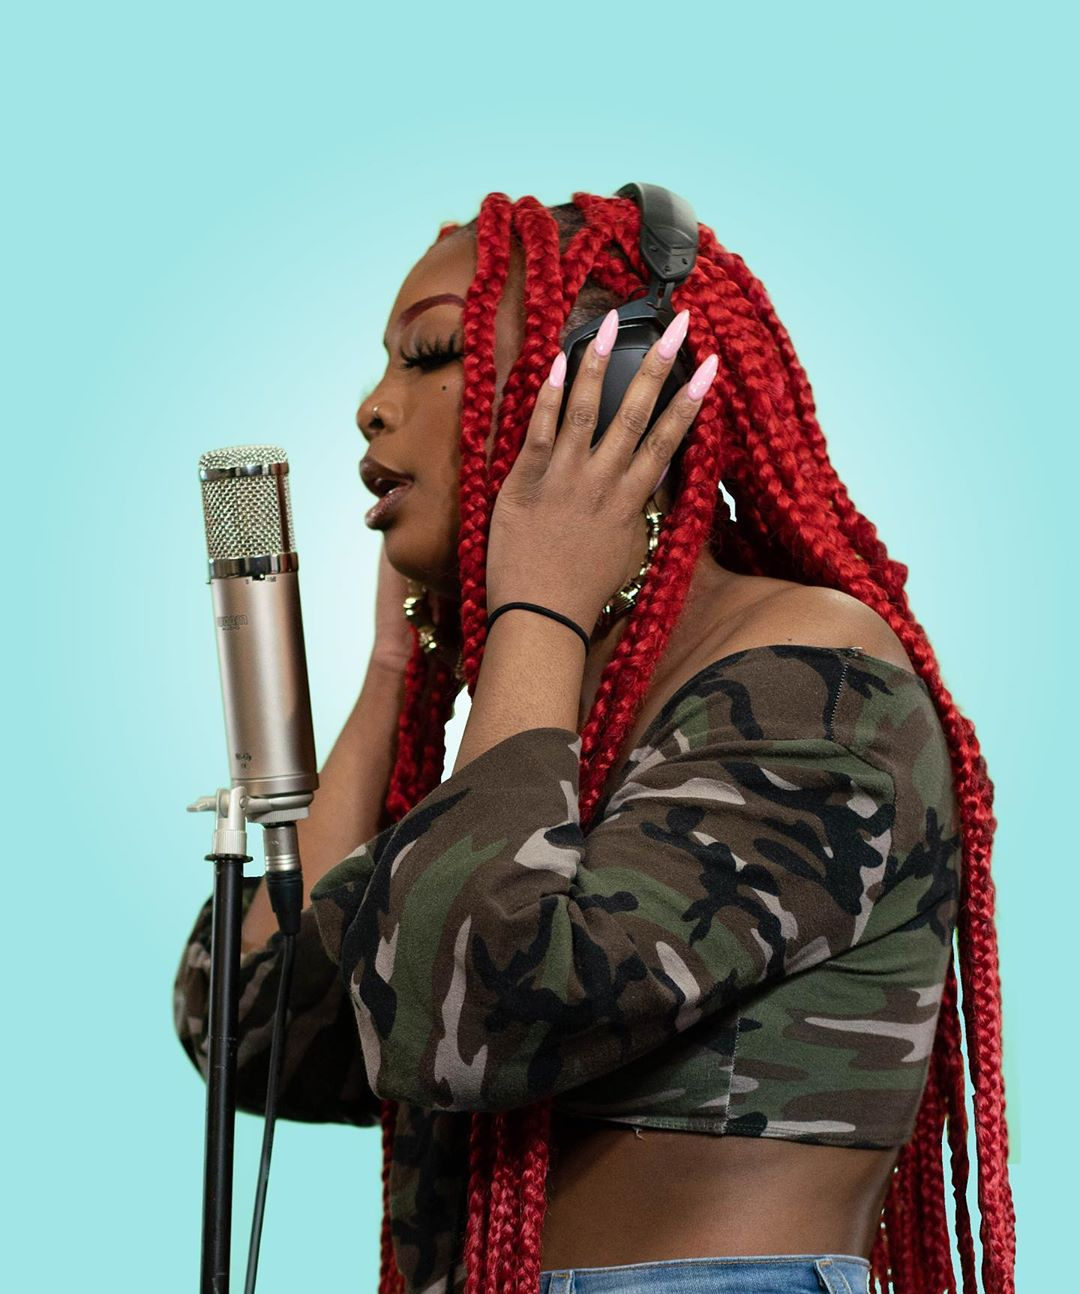 Chelly The MC & Adé – AMPD Freestyles (Video)